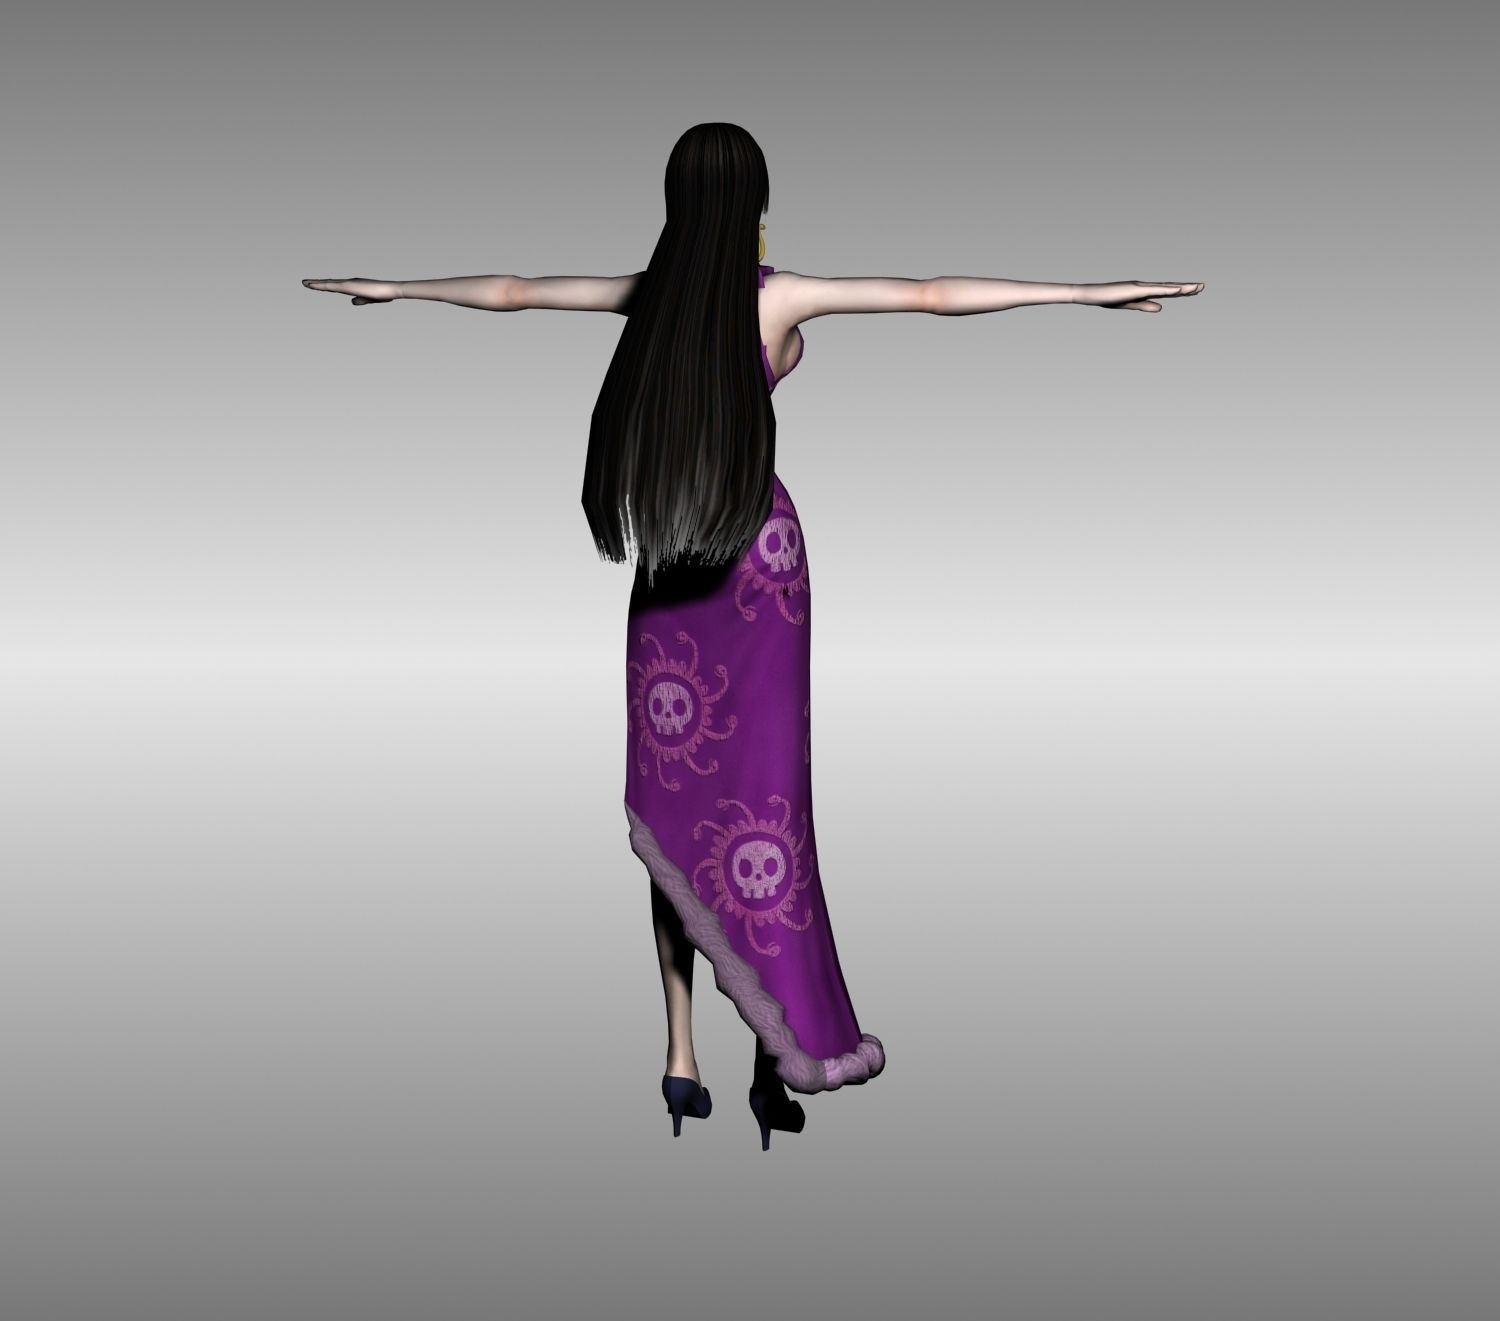 Boa Hancock One Piece 3D Model Rigged MAX 3DS FBX